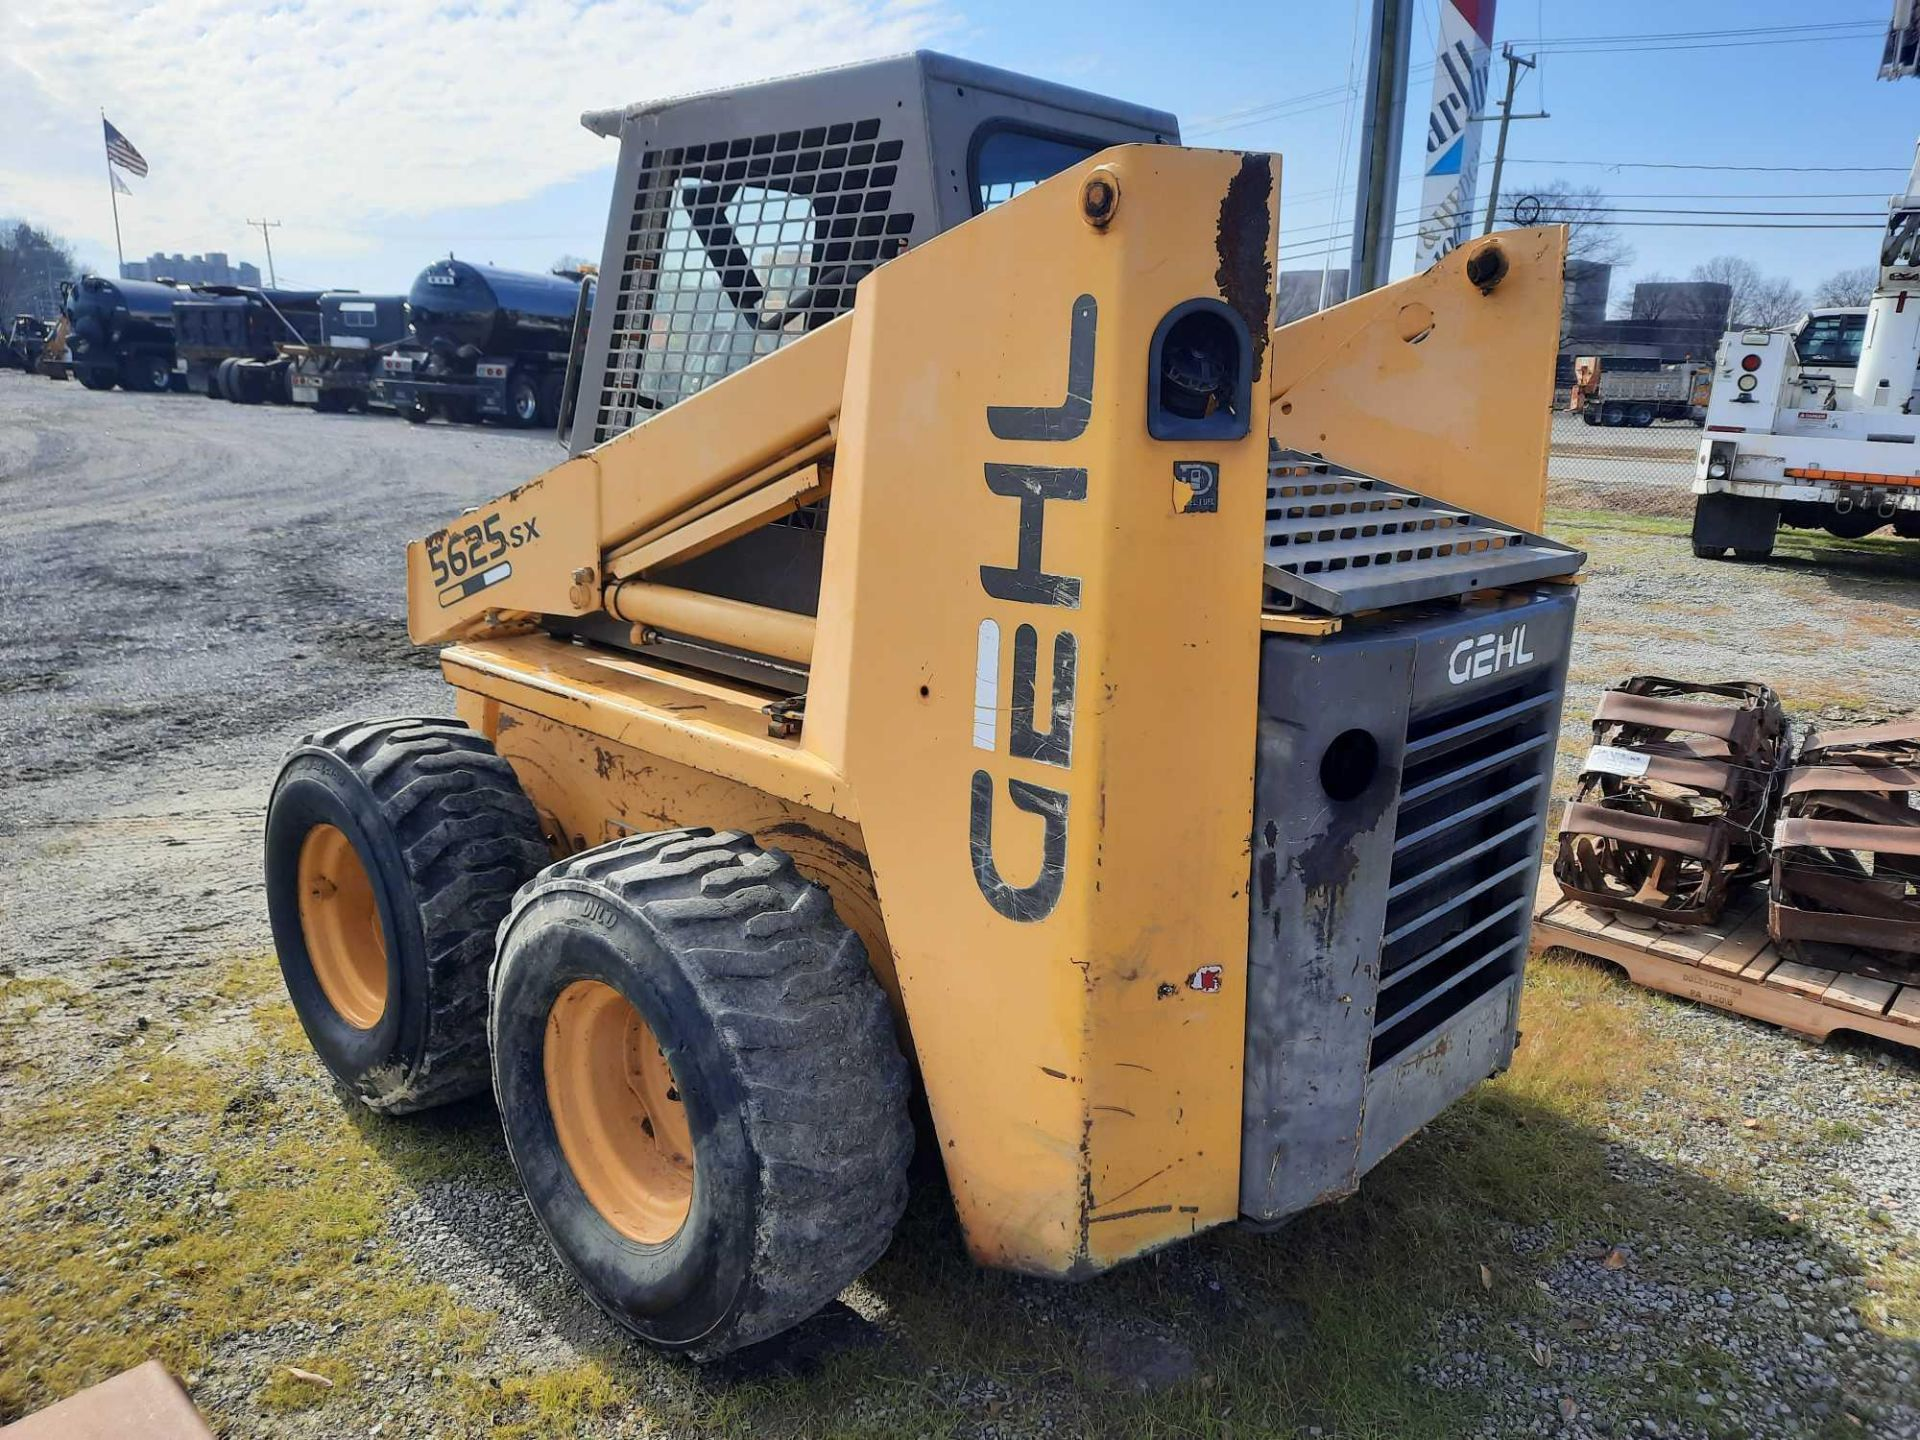 1995 GEHL 5625 SX SKID-STEER WITH ATTACHMENTS - Image 2 of 4